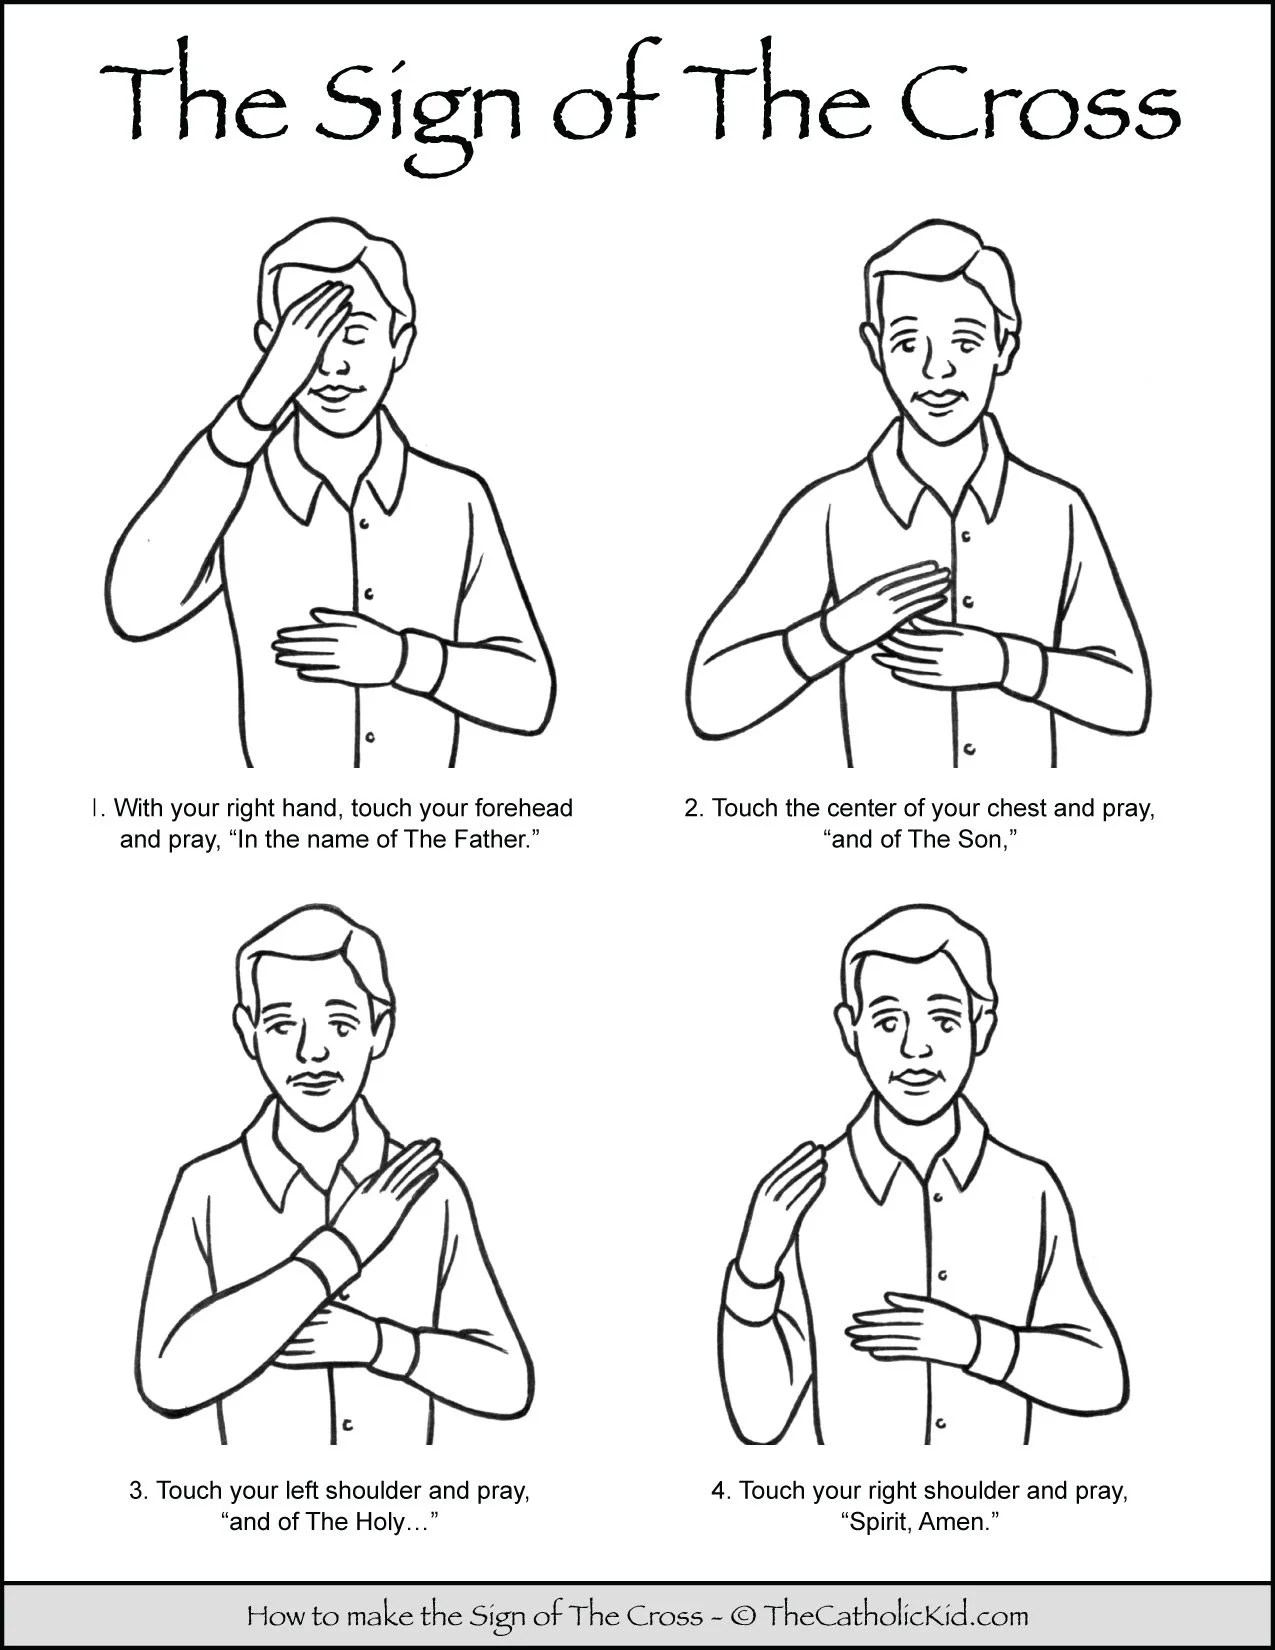 How To Make The Sign Of The Cross